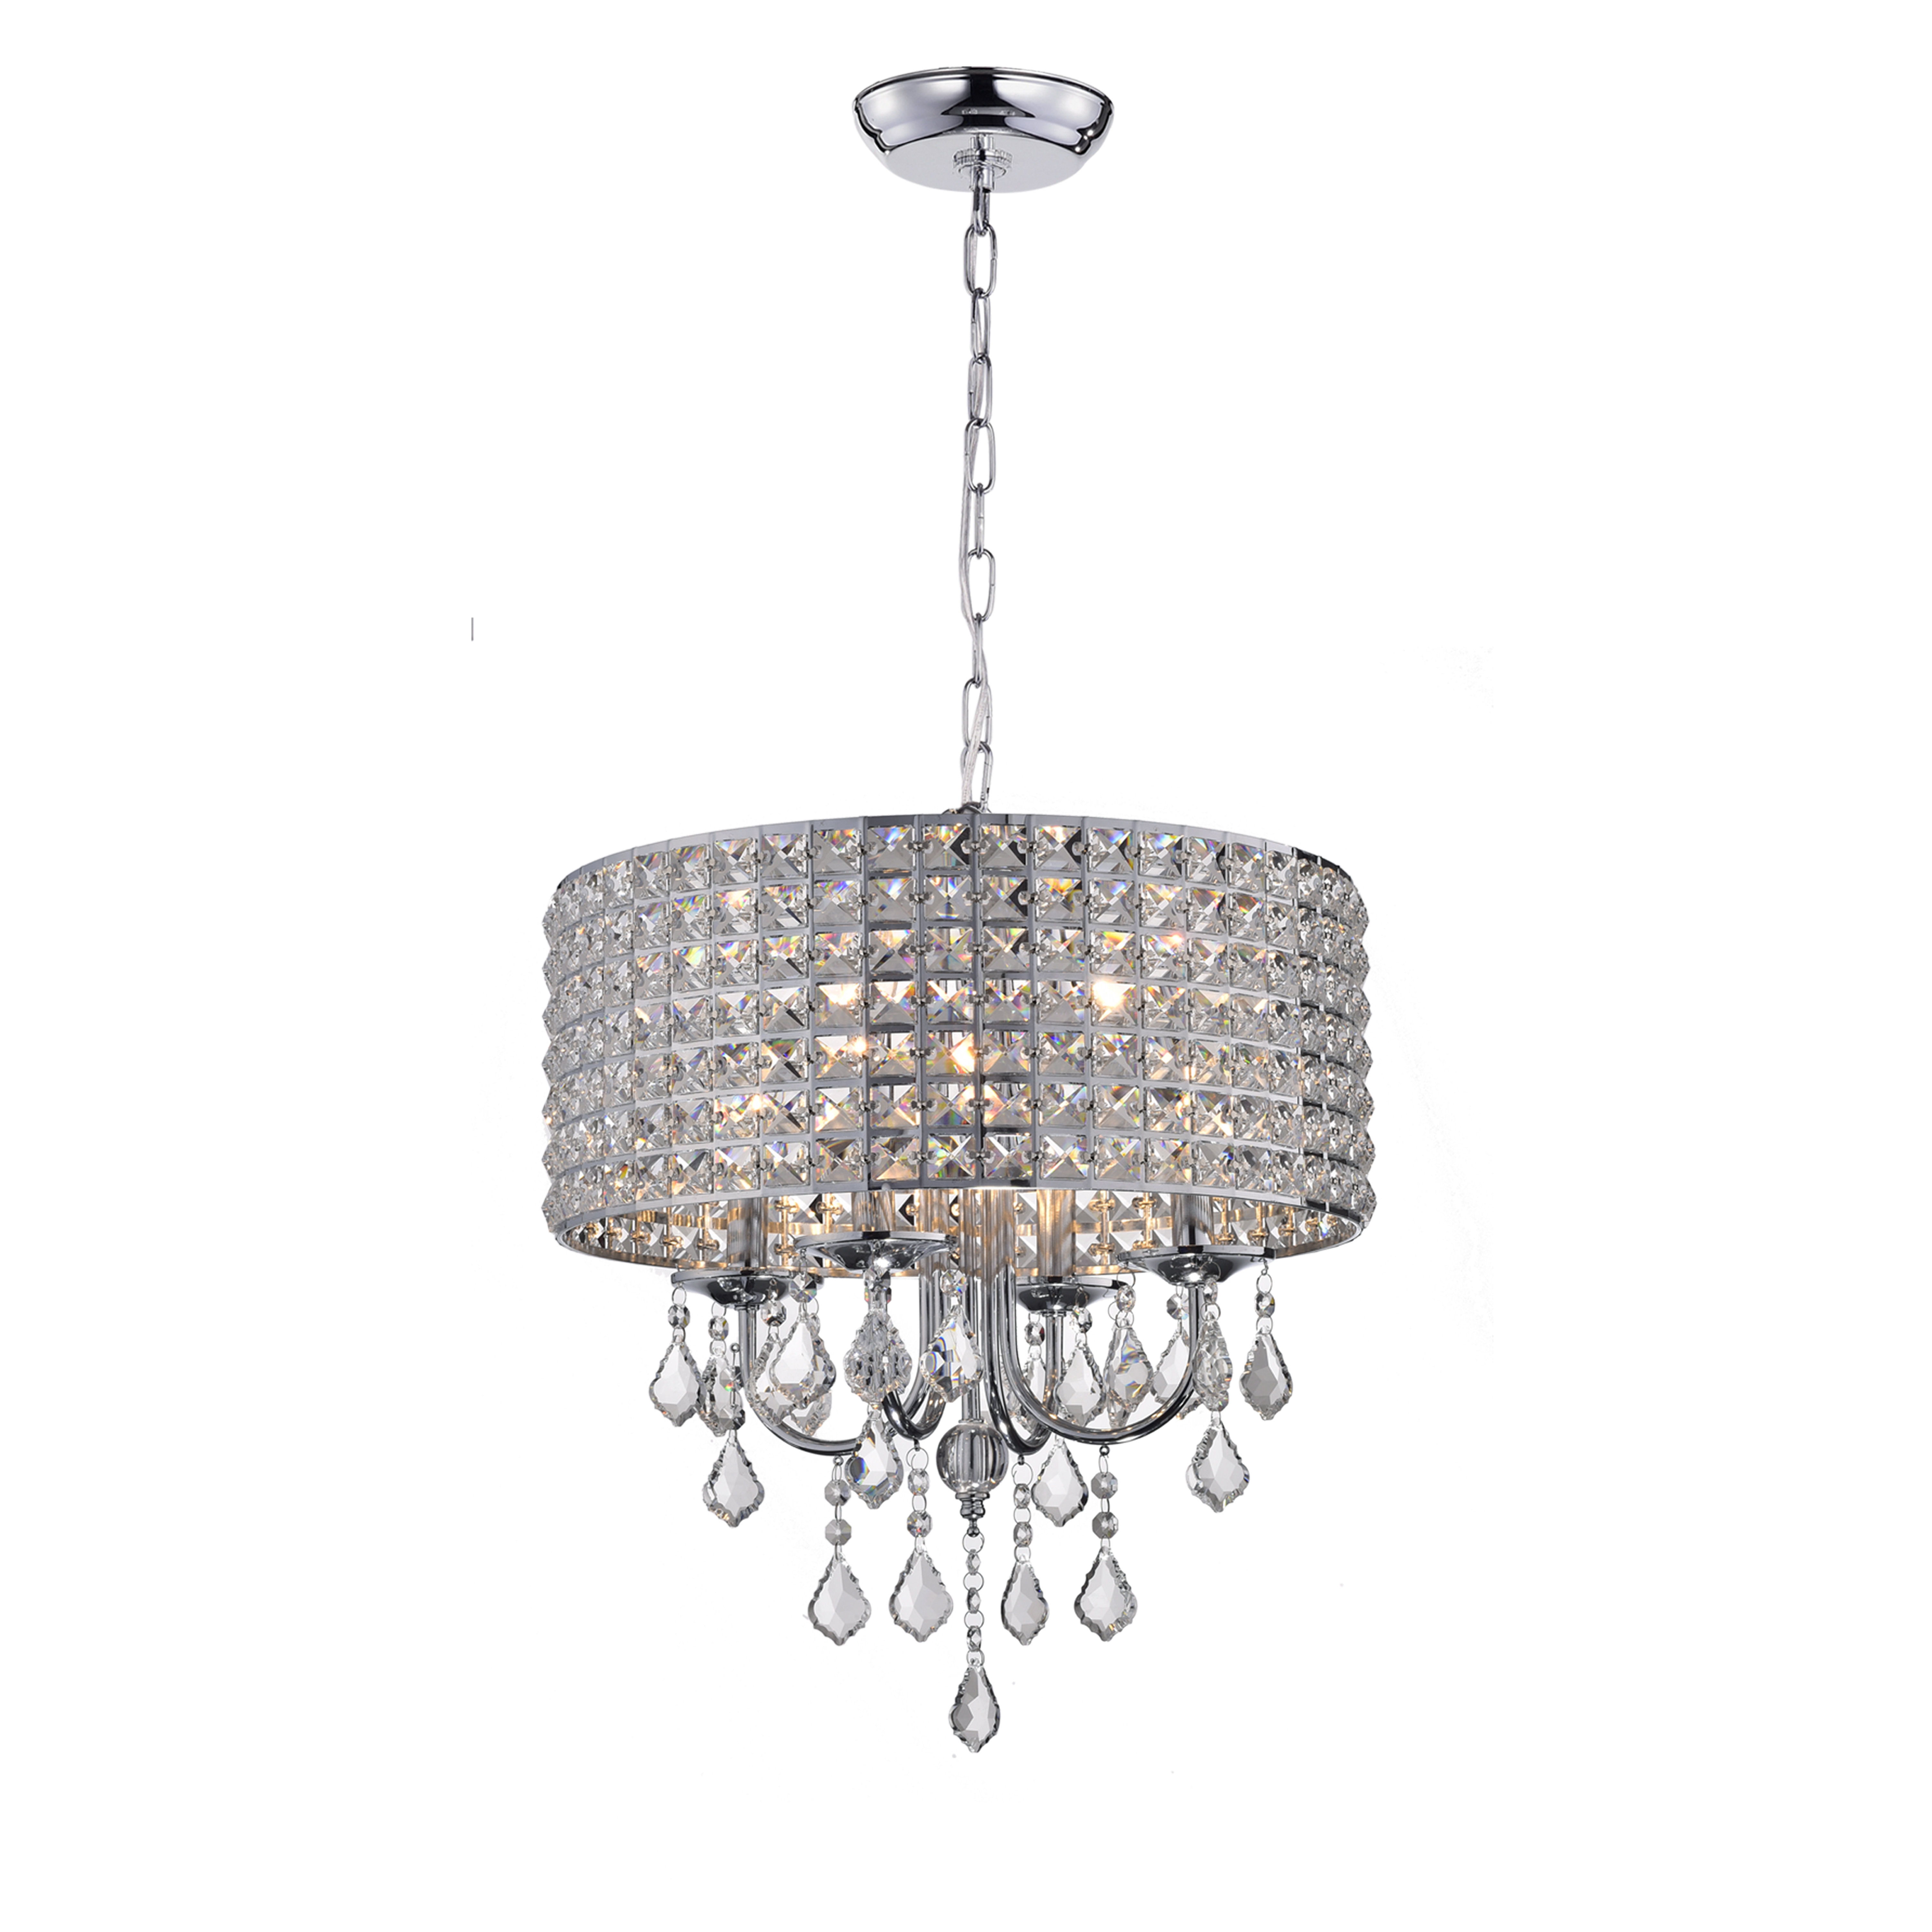 Gisselle 4 Light Drum Chandeliers With Regard To 2020 Albano 4 Light Crystal Chandelier (View 13 of 20)